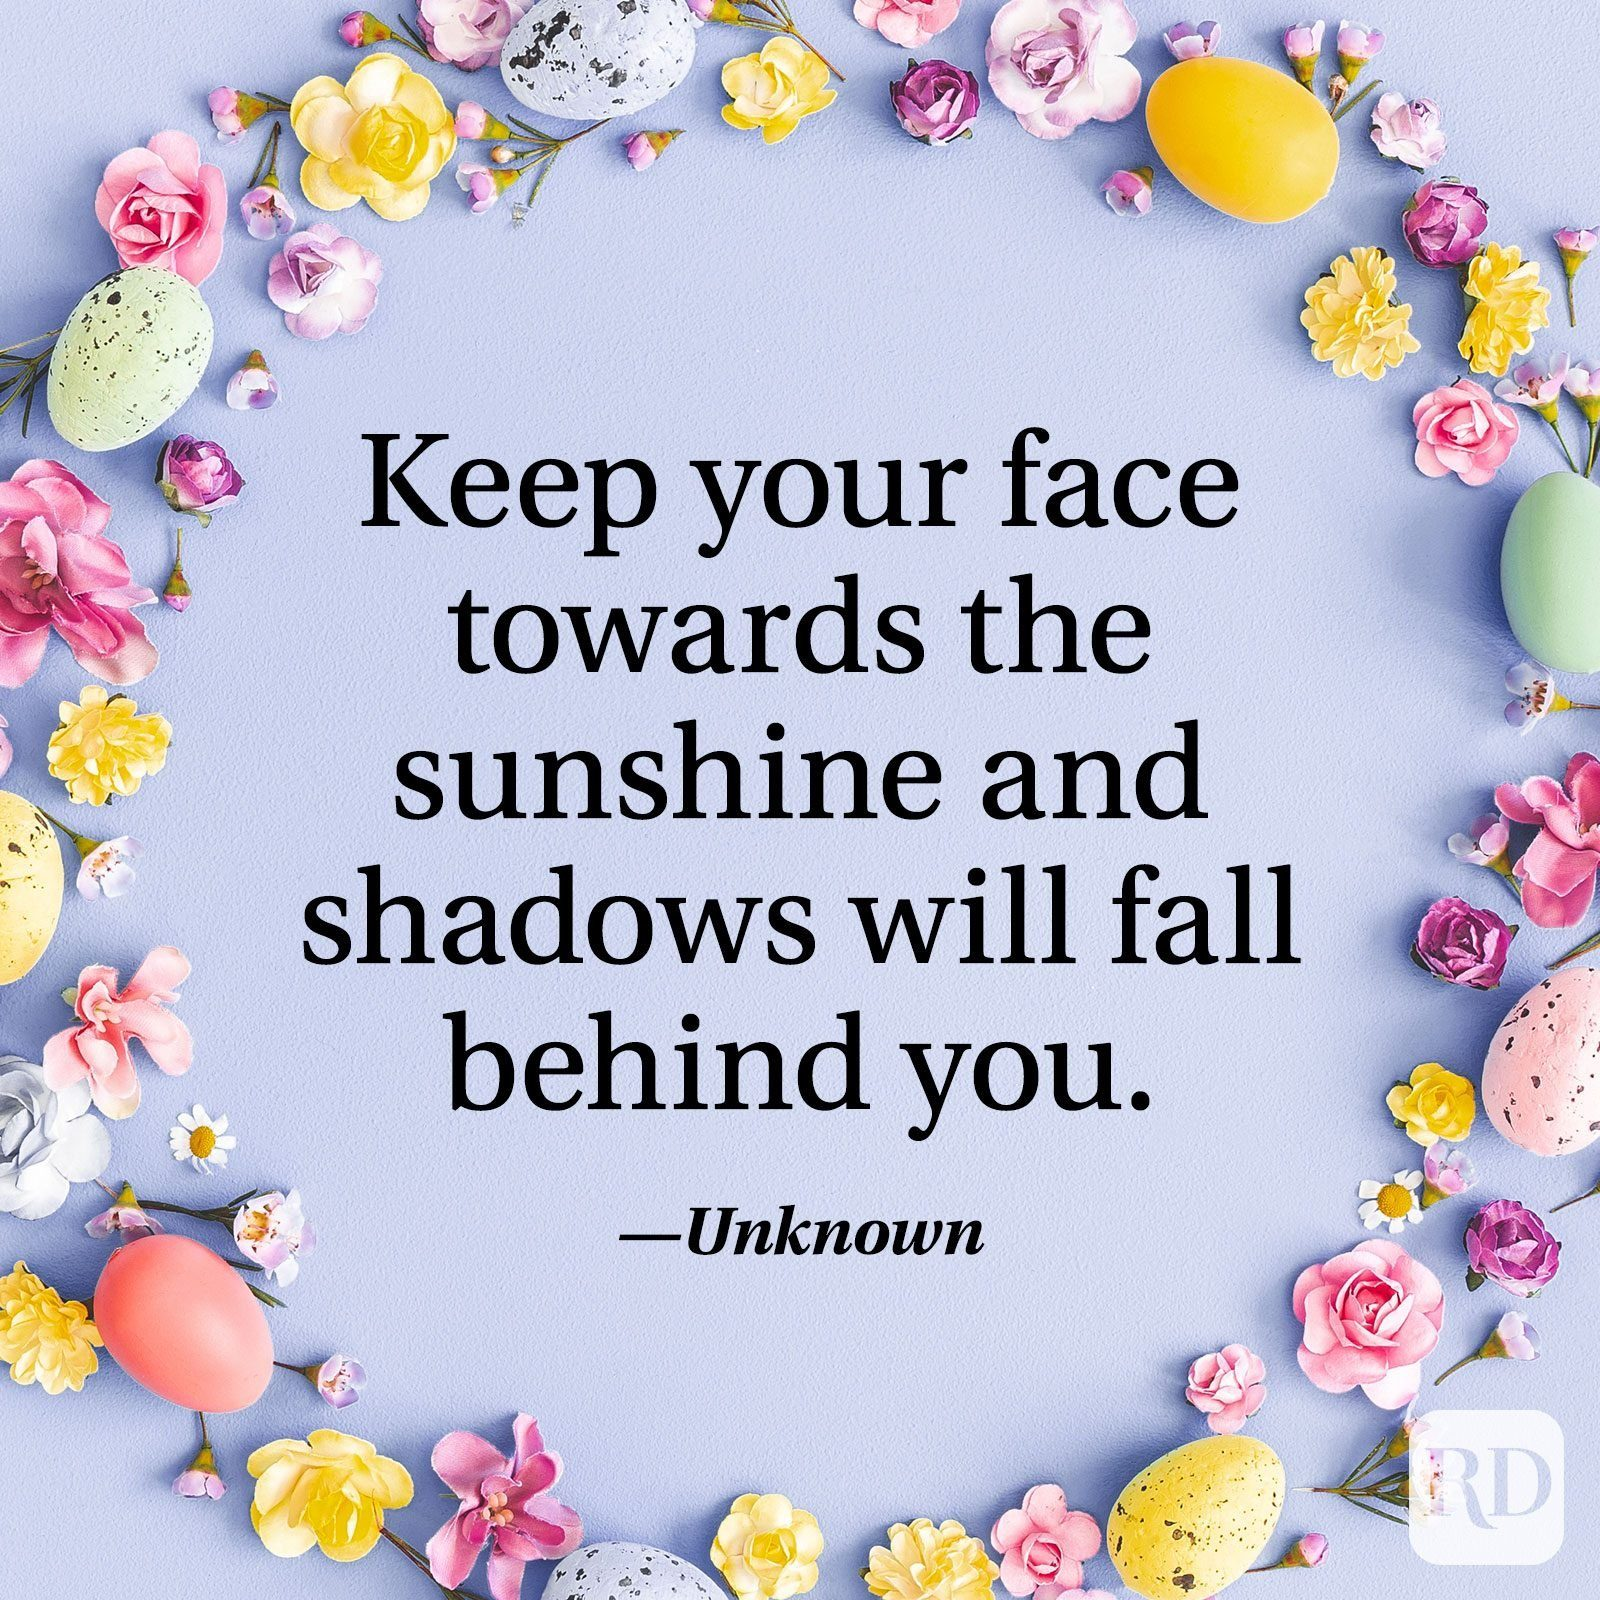 """""""Keep your face towards the sunshine and shadows will fall behind you."""" — Unknown"""